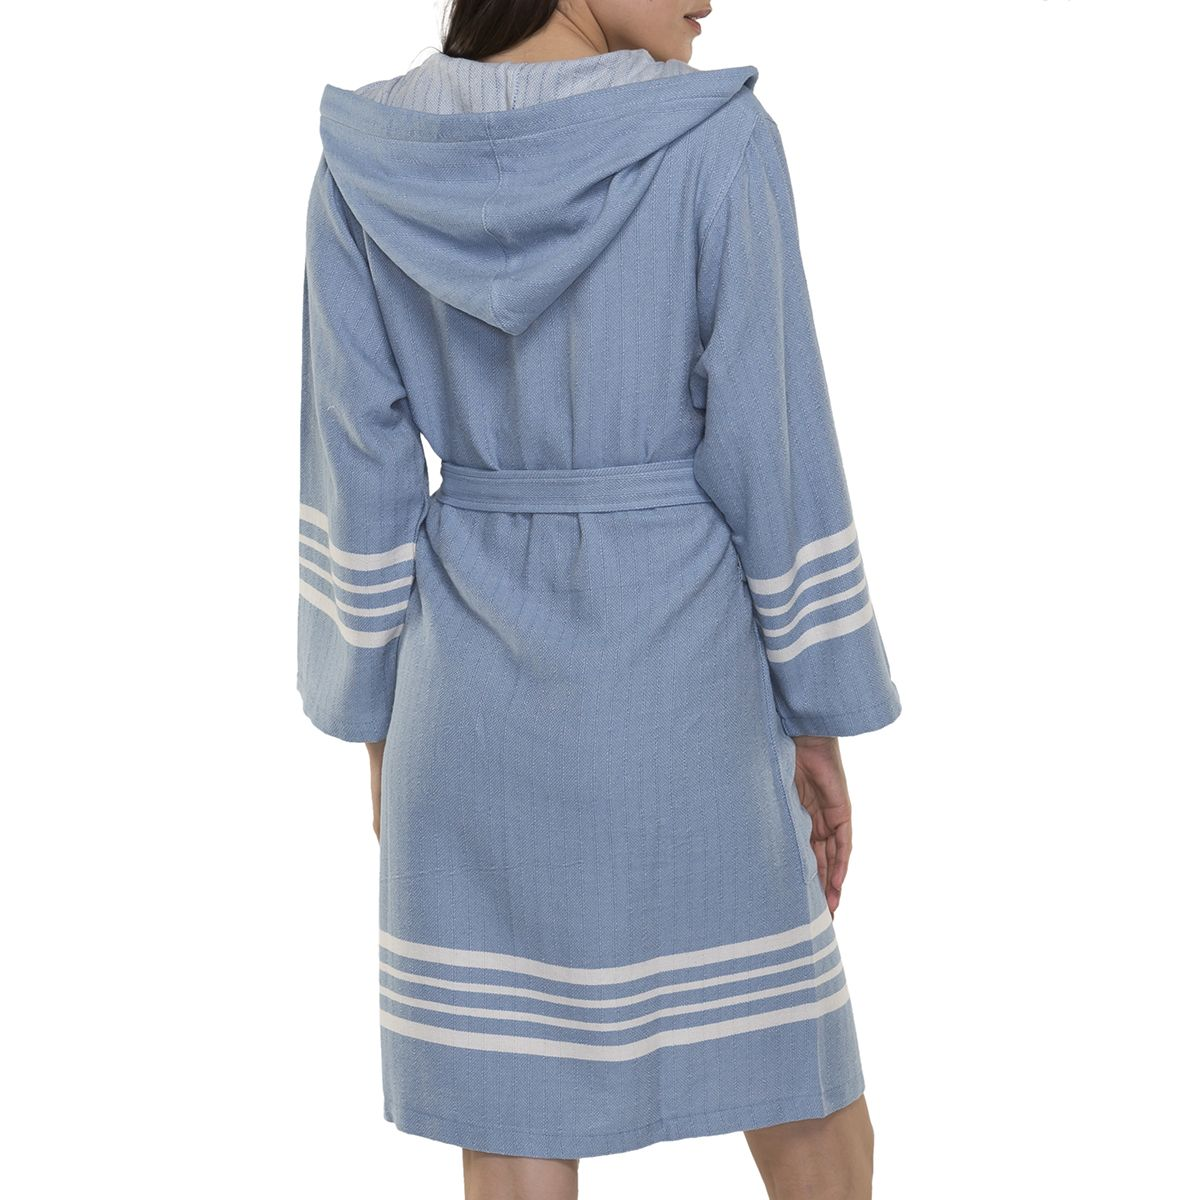 Bathrobe Sultan with hood - Air Blue